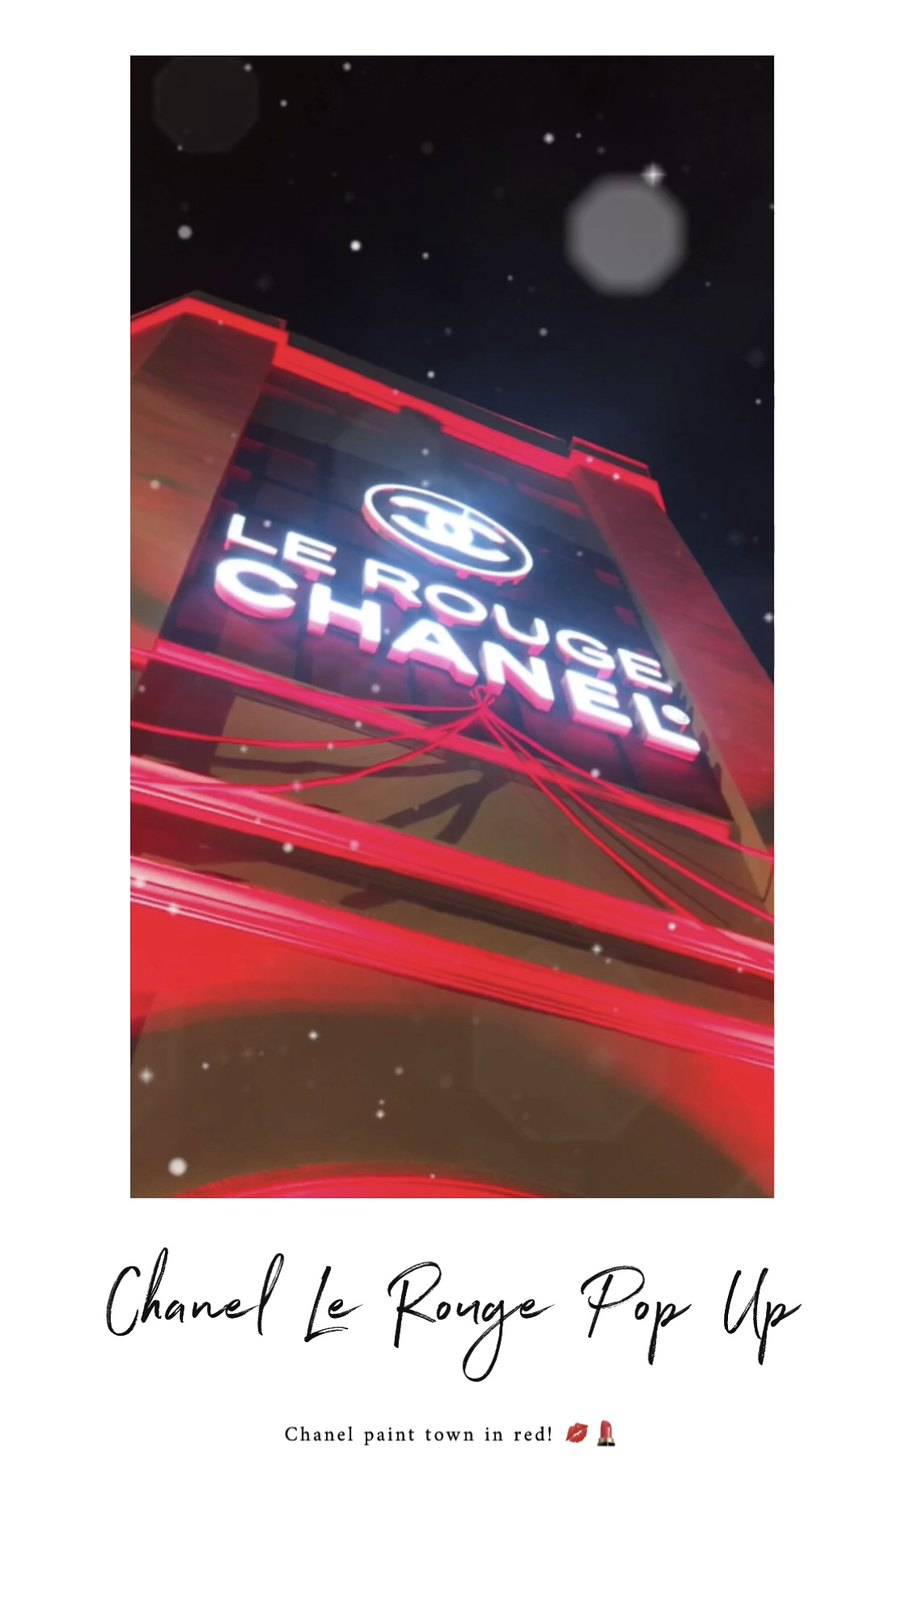 [Beauty] Chanel Le Rouge Pop Up at 72-13 Mohamed Sultan Road, Singapore